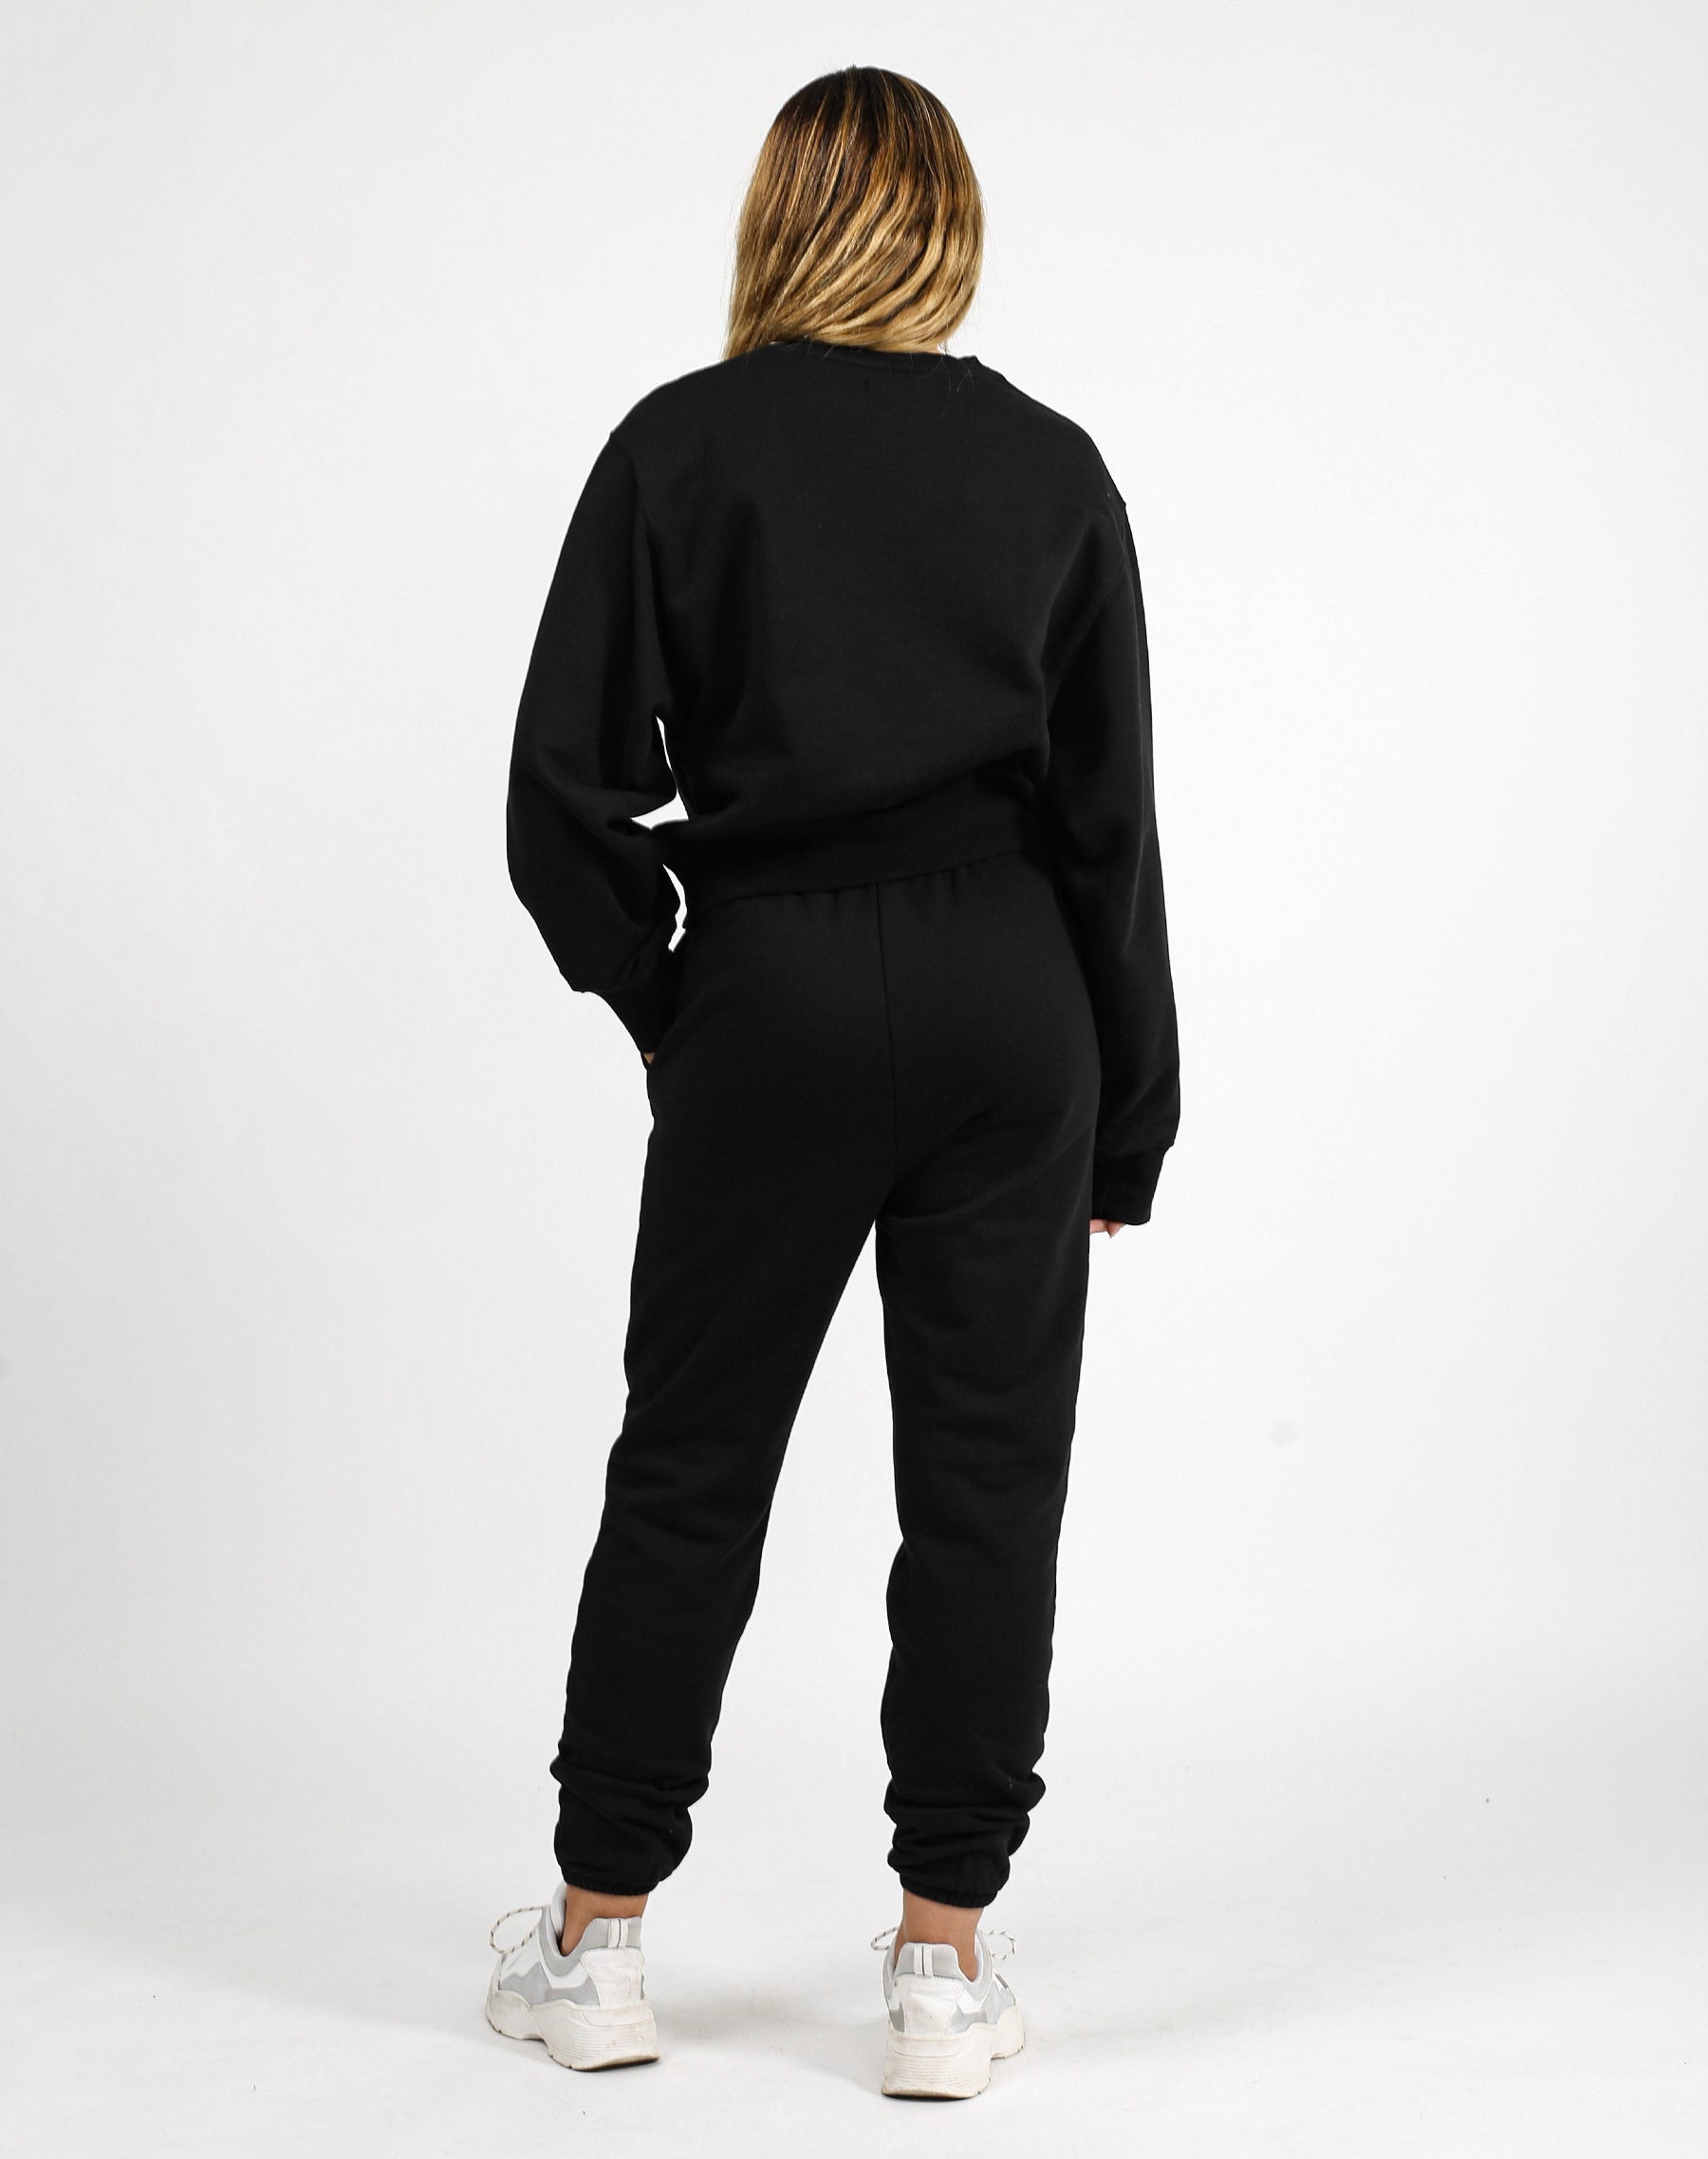 This is an image of the back of the Babes Social Club Best Friend Sweatsuit in Black by Brunette the Label.